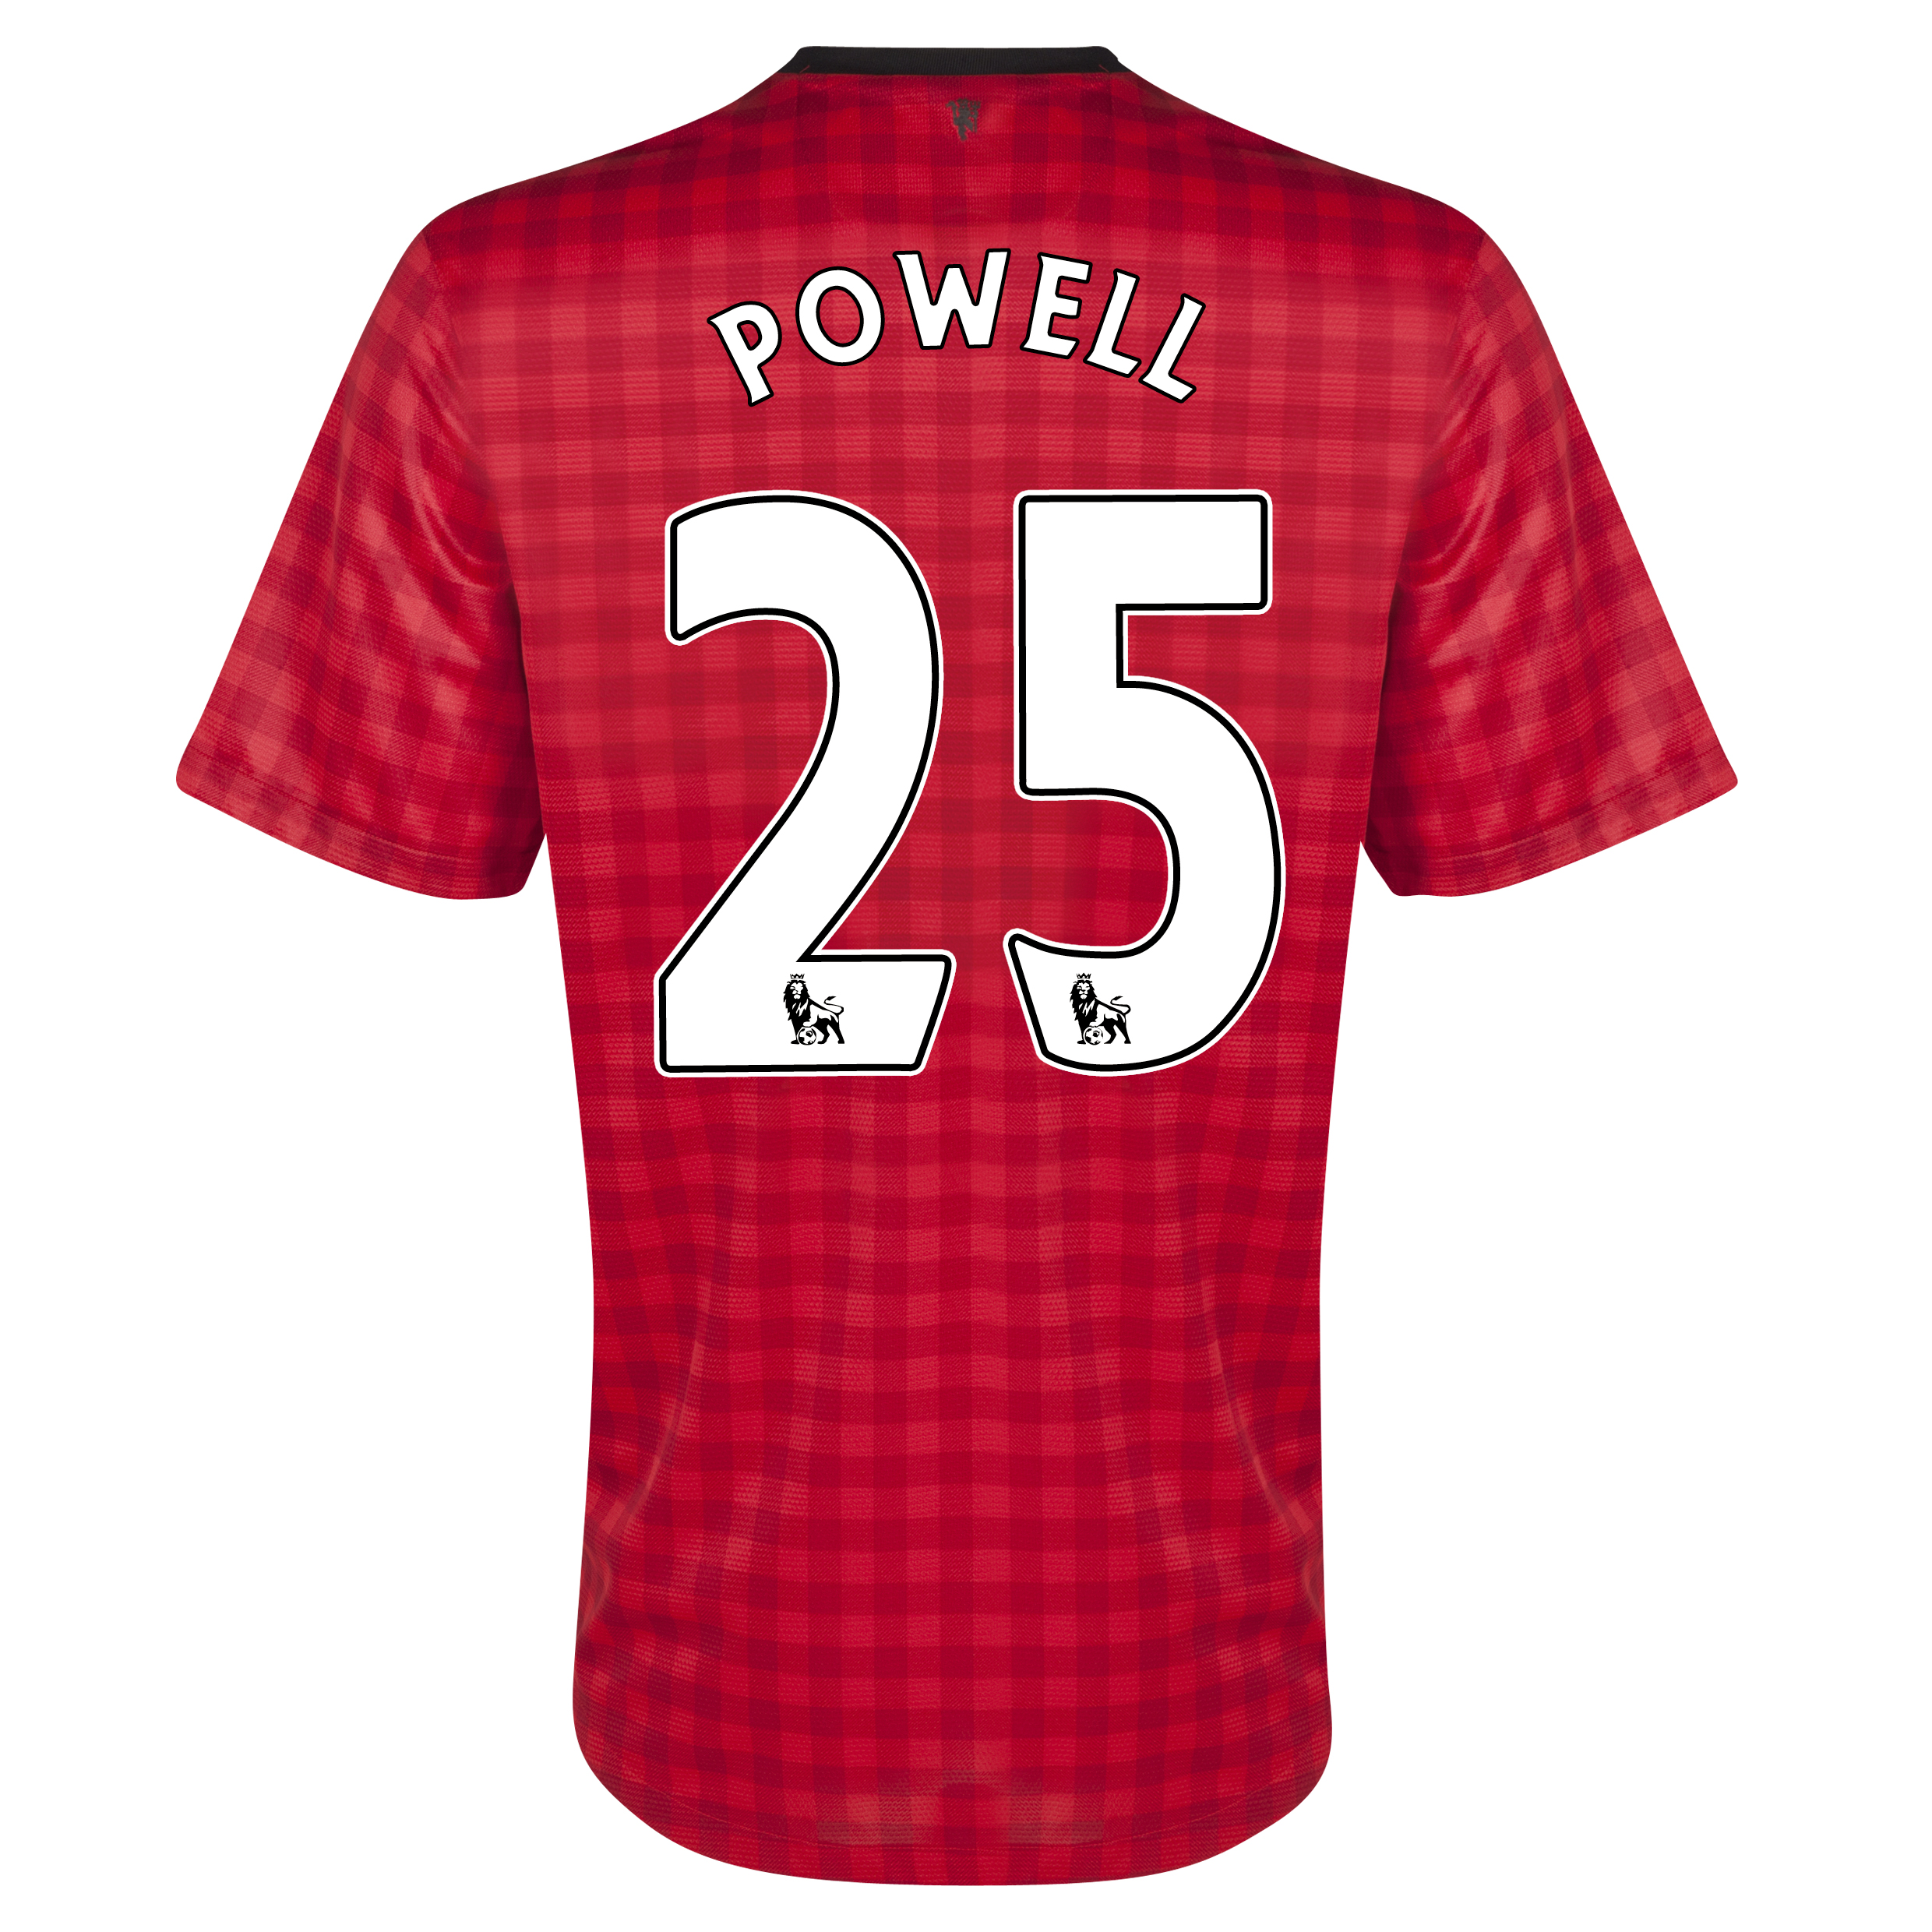 Manchester United Home Shirt 2012/13 with Powell 25 printing